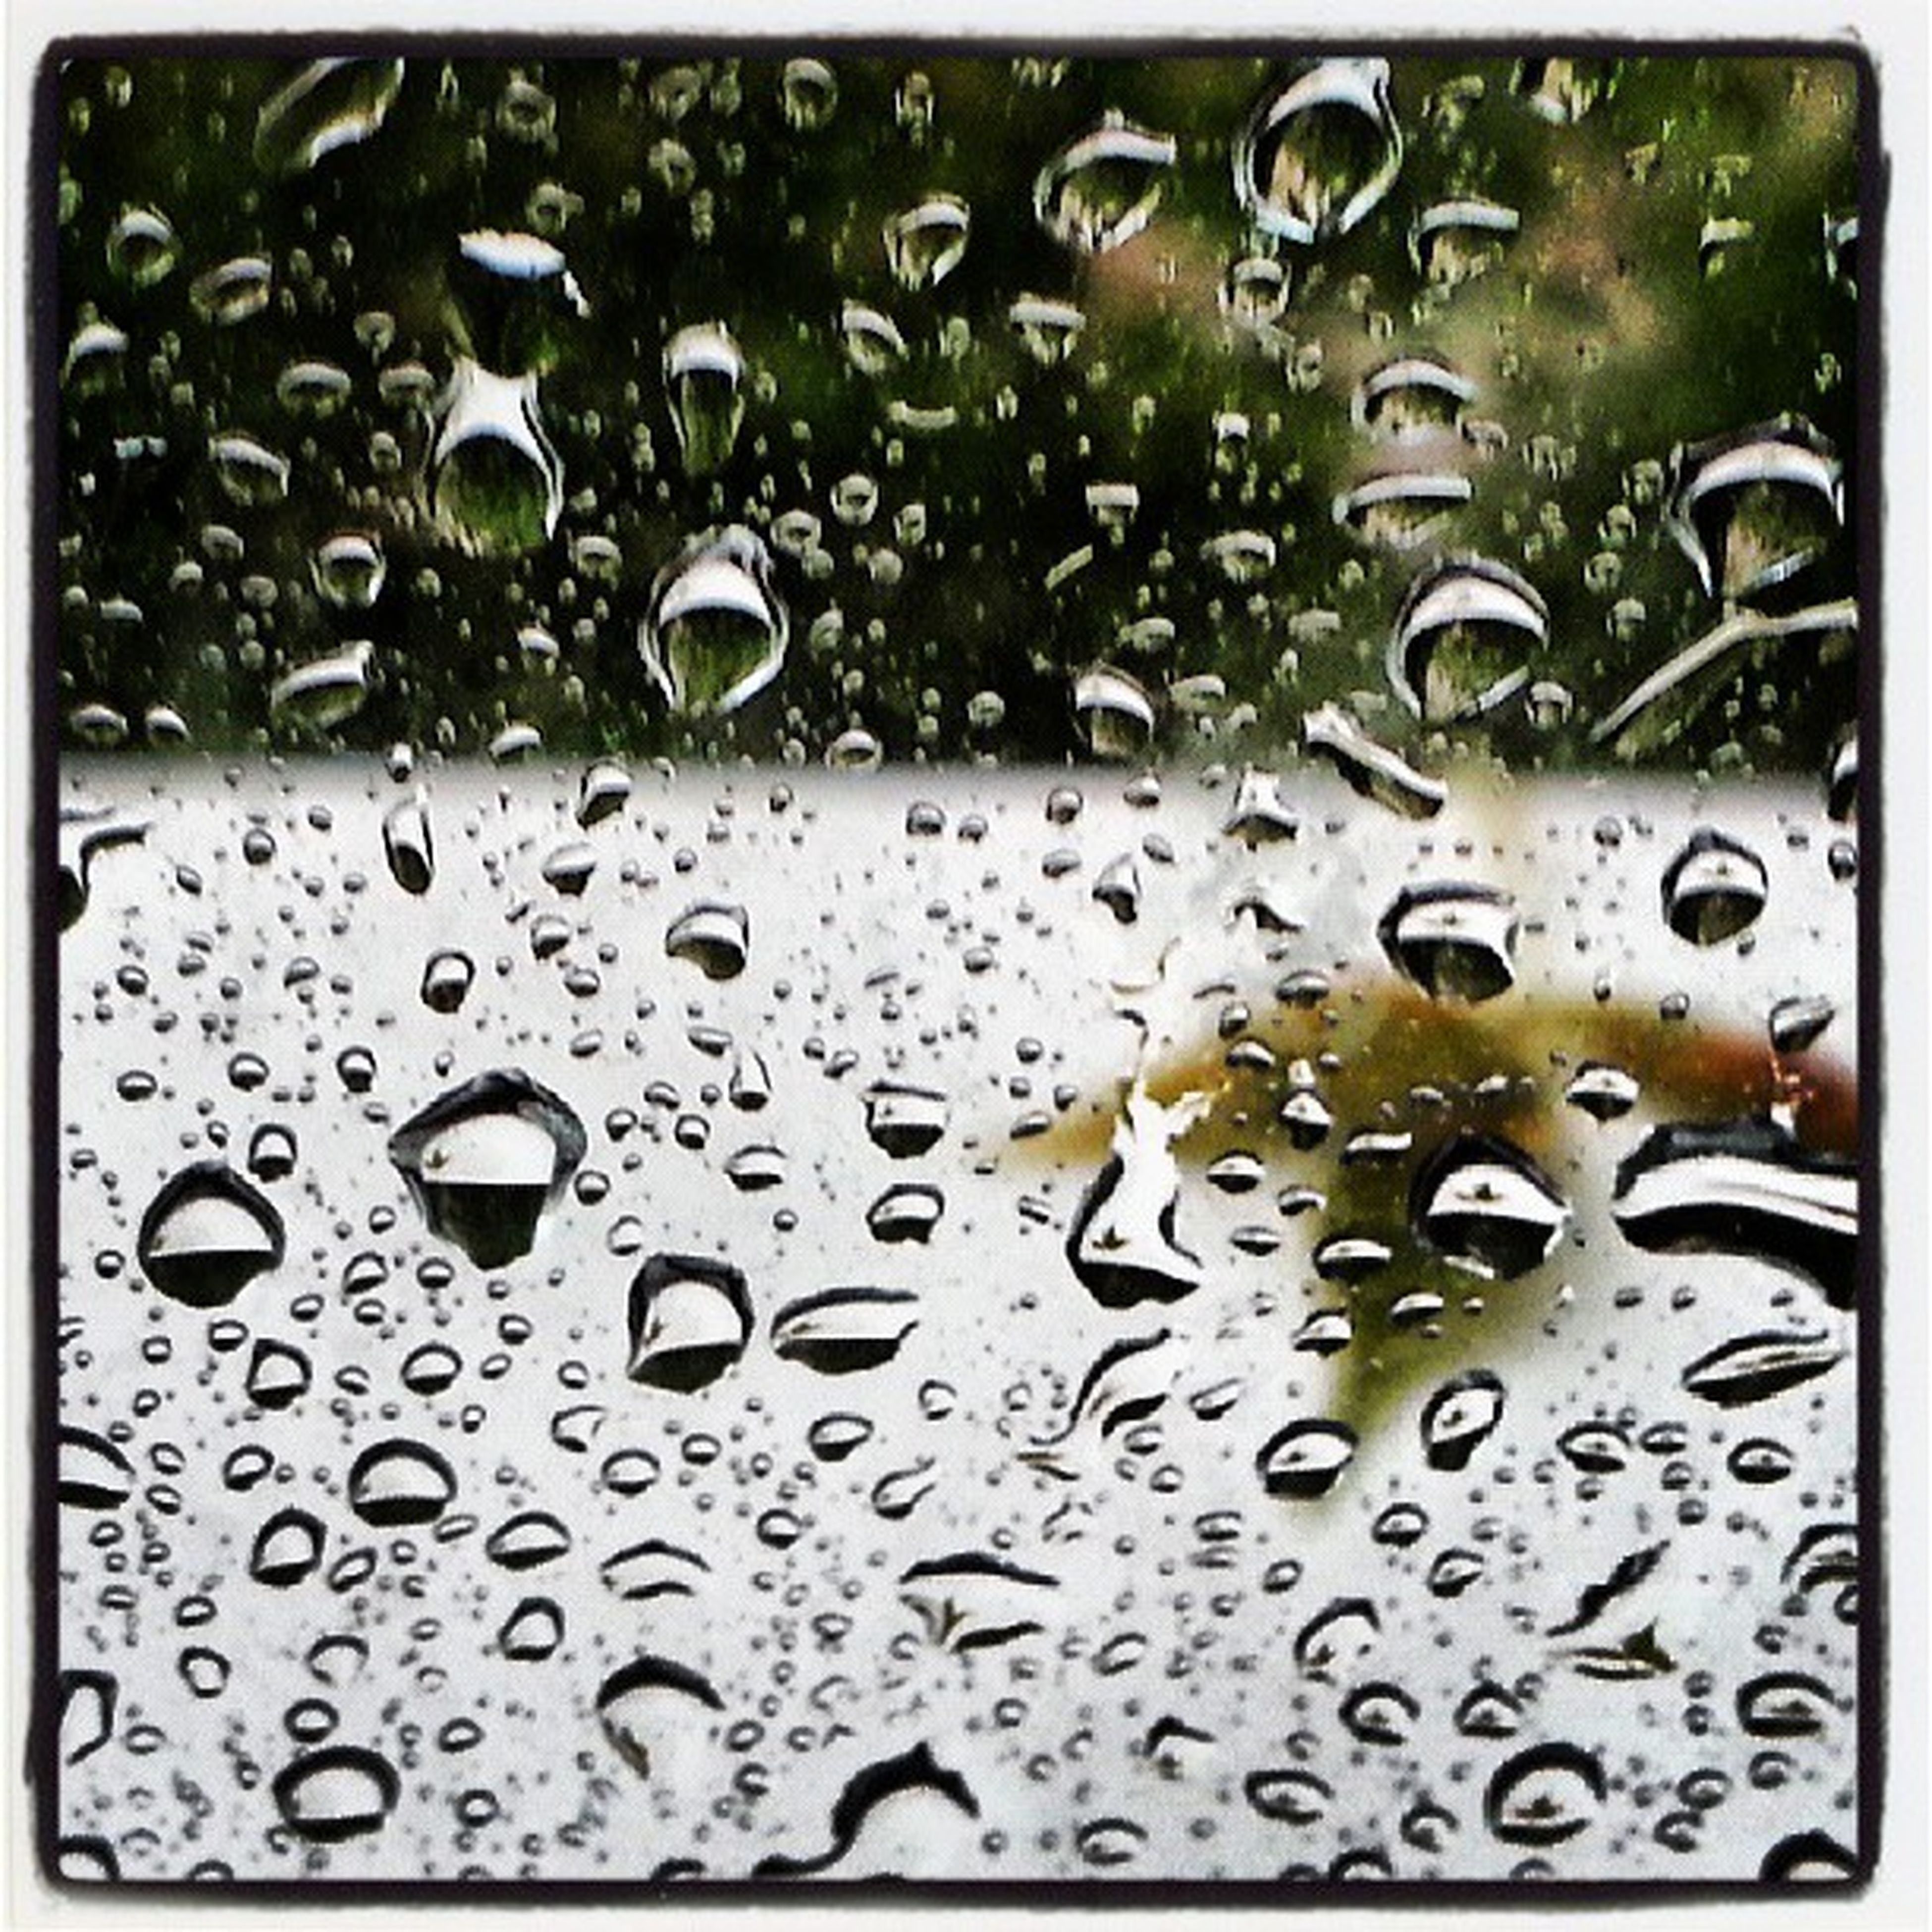 drop, wet, water, rain, window, raindrop, glass - material, transparent, indoors, backgrounds, full frame, weather, transfer print, glass, season, close-up, monsoon, water drop, auto post production filter, droplet